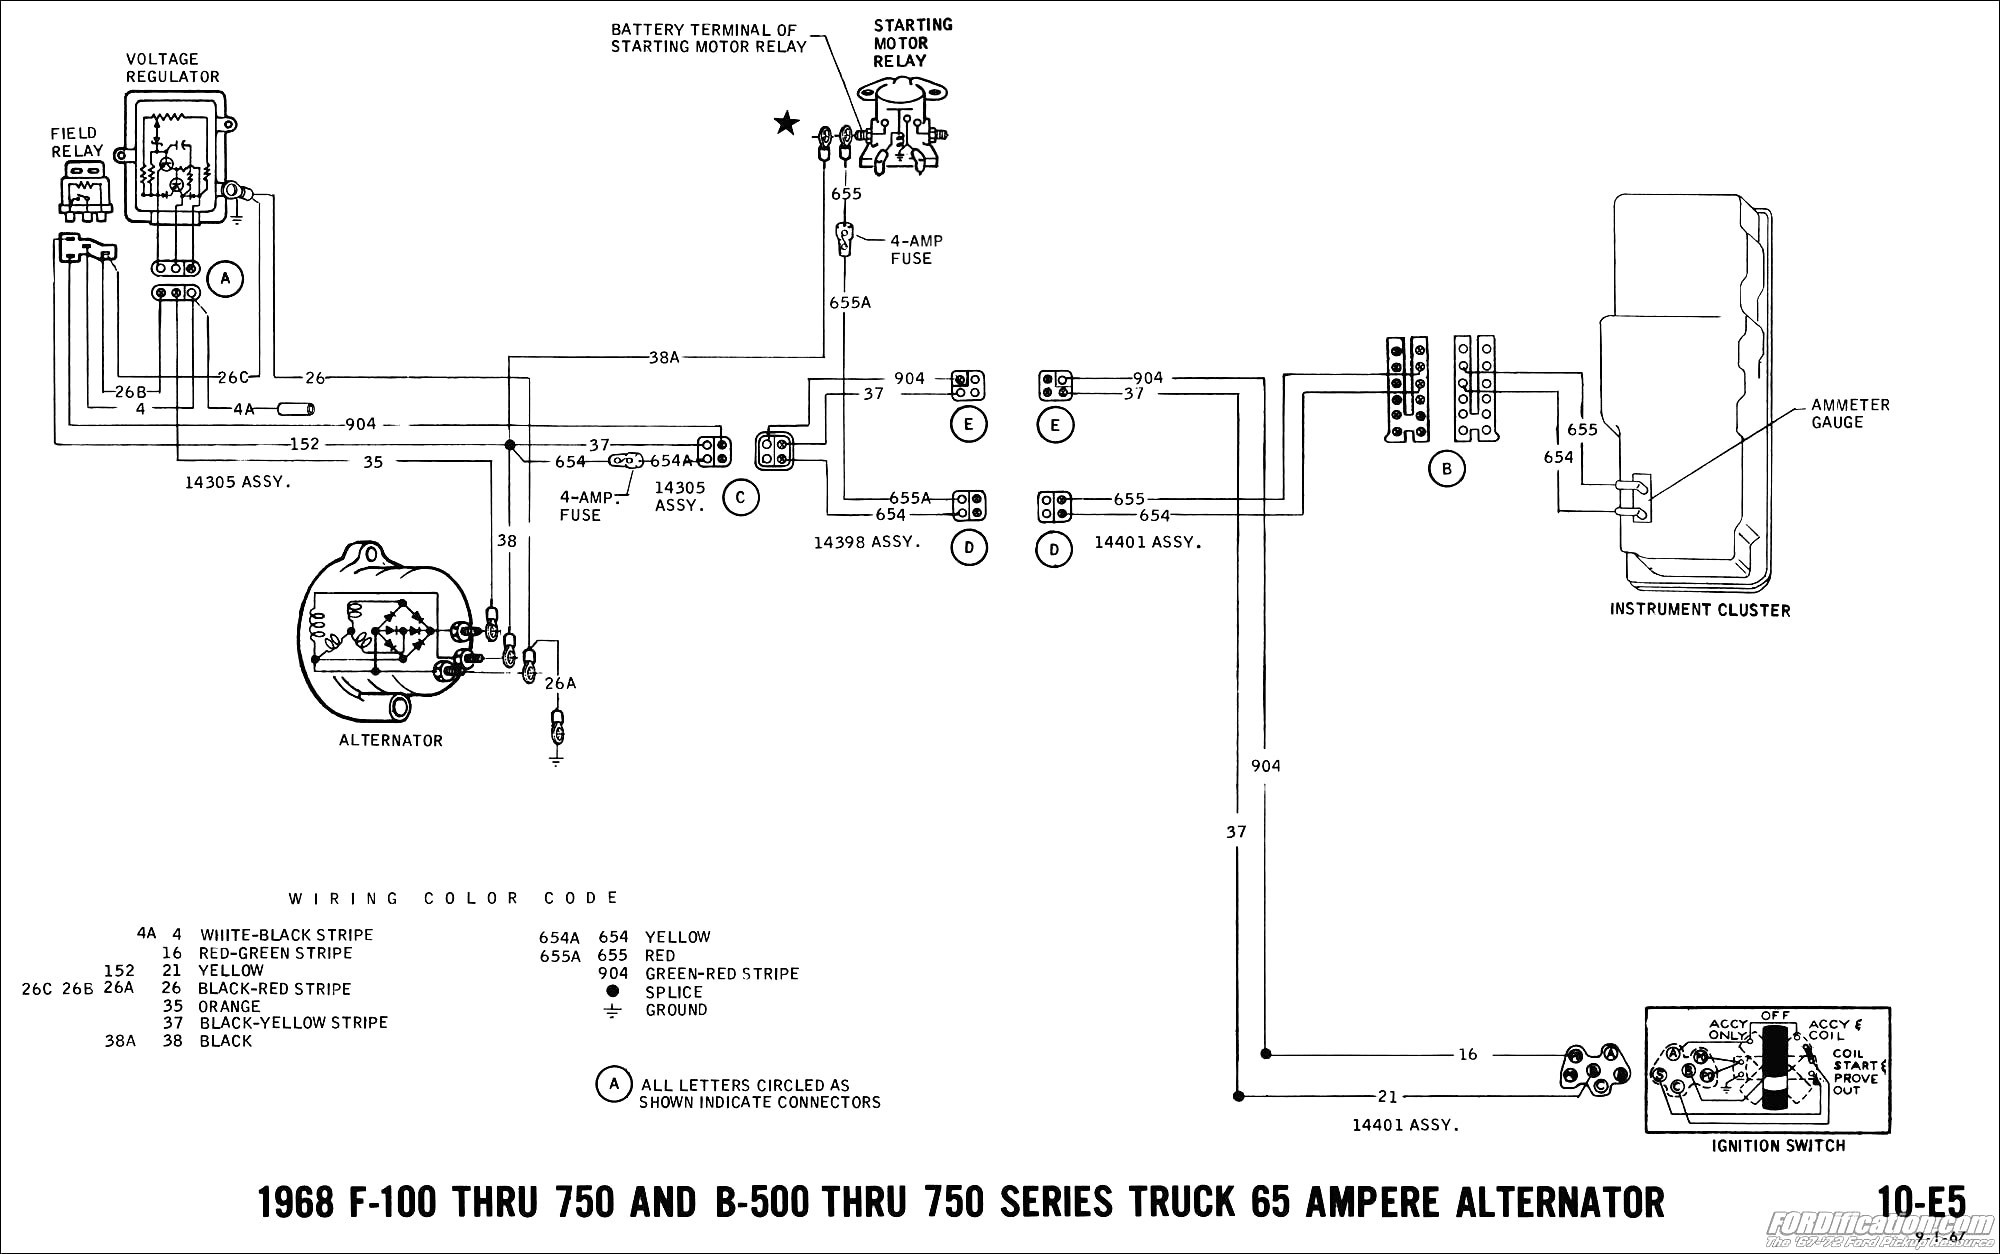 1967 mustang alternator wiring diagram Collection-Alternator Wiring Diagram Problem Best 1967 Mustang Wiring And Vacuum Diagrams Average Joe Restoration 13-c